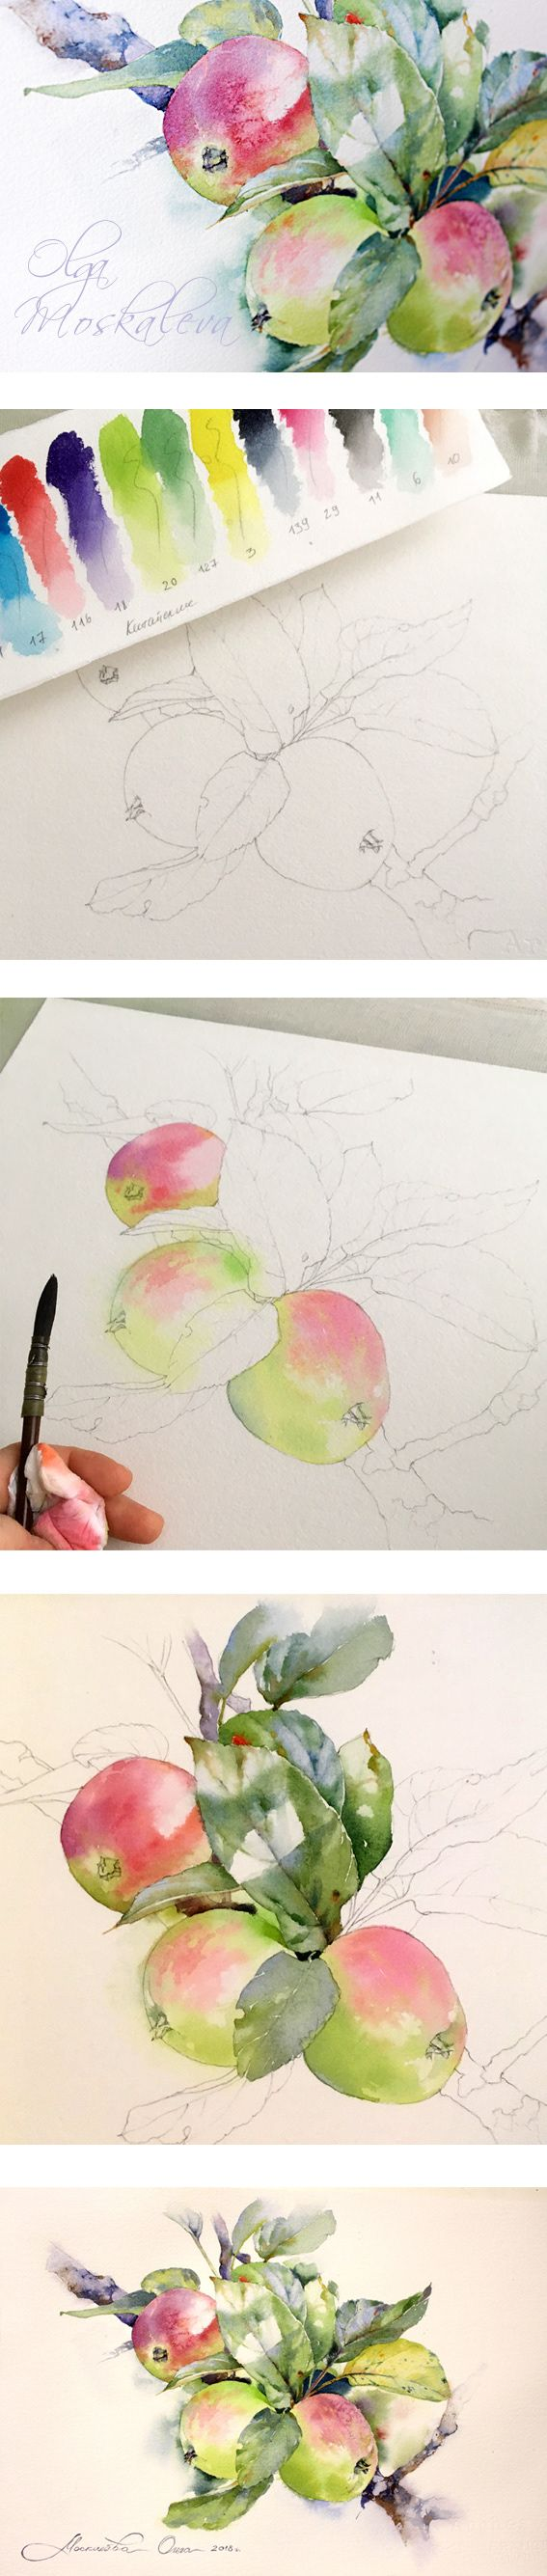 Apples in the snow on Behance Watercolor art, Apple